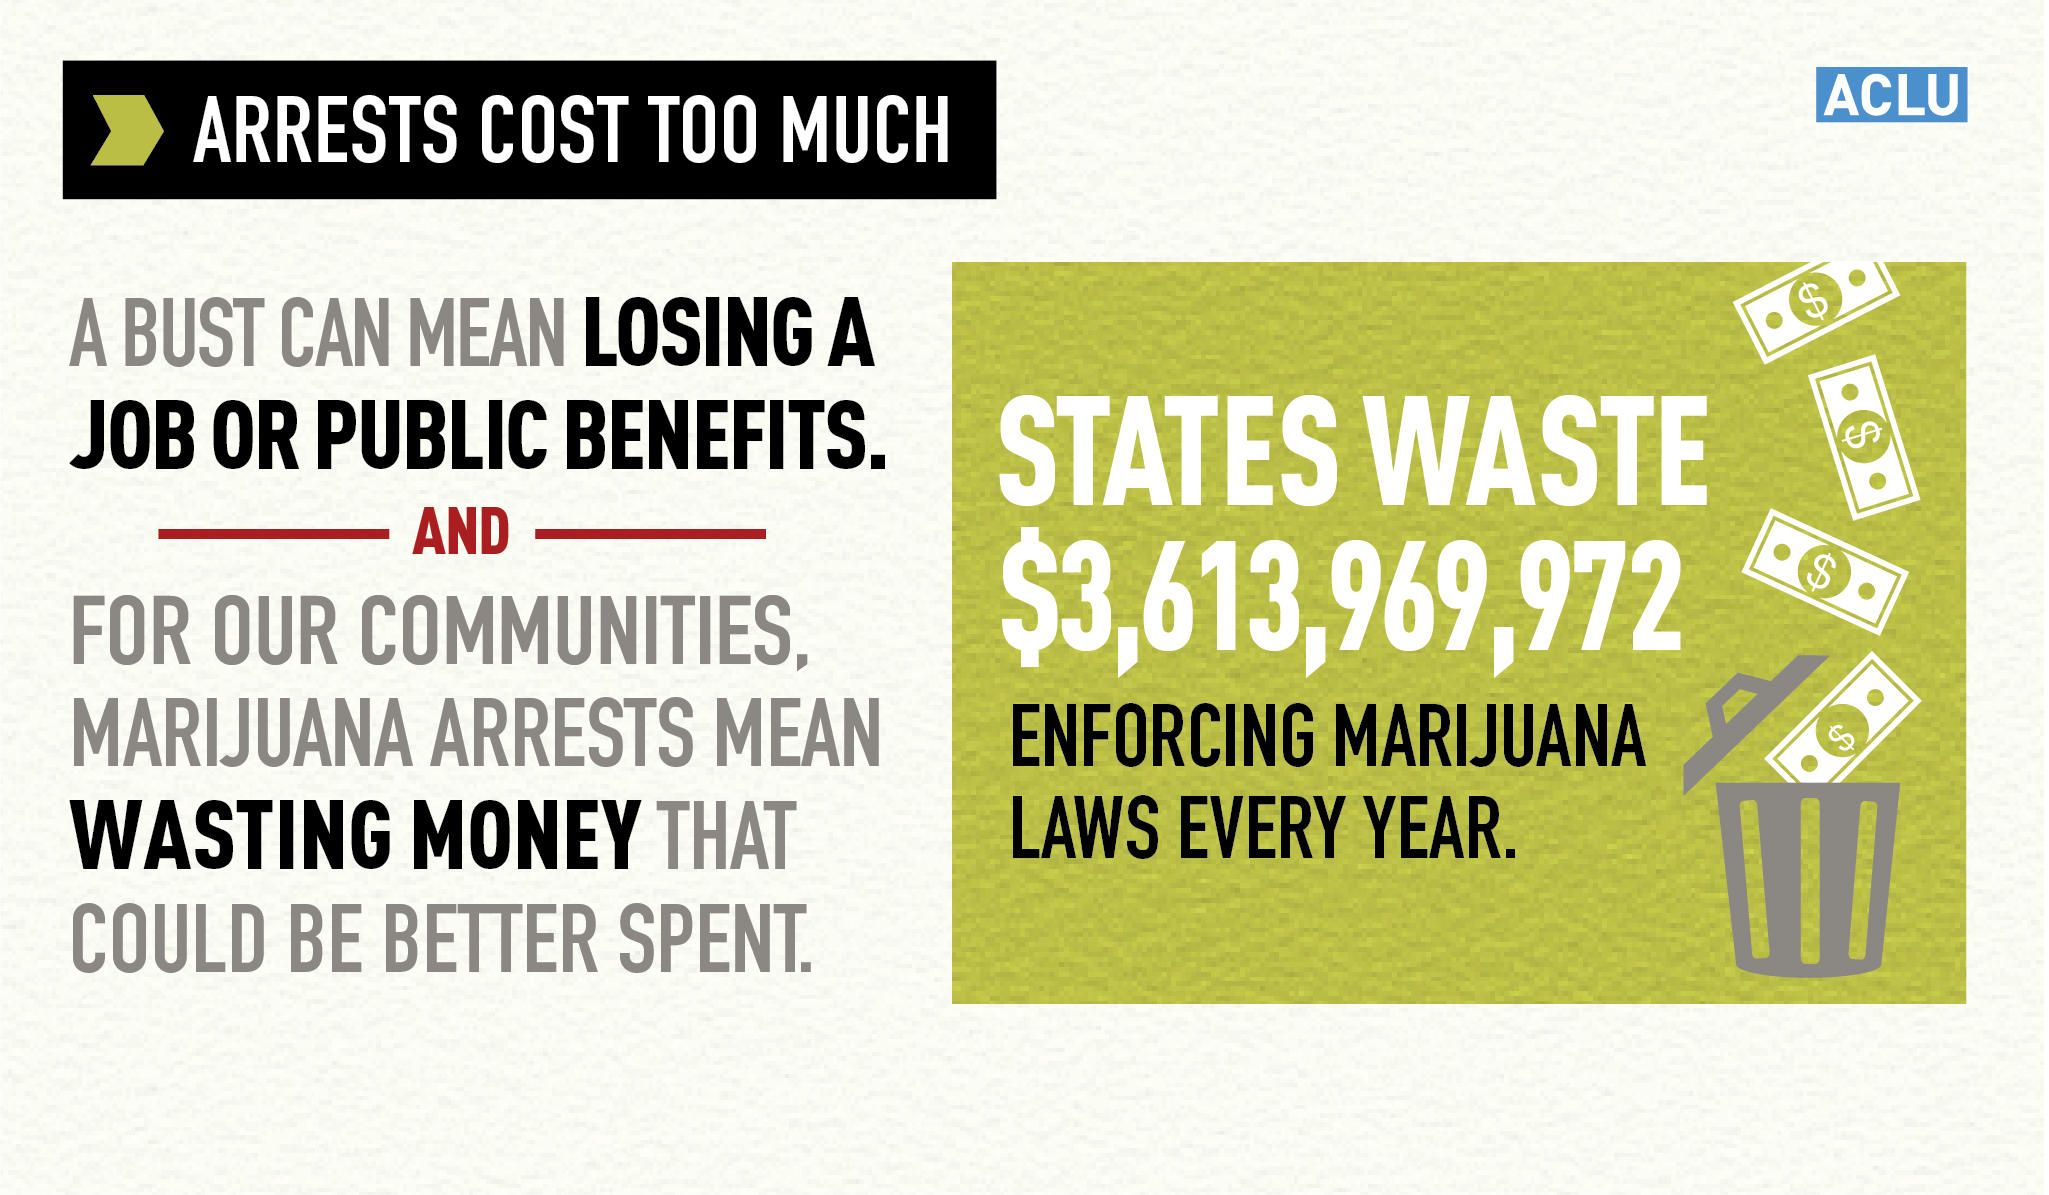 Marijuana Arrests Wastes Money